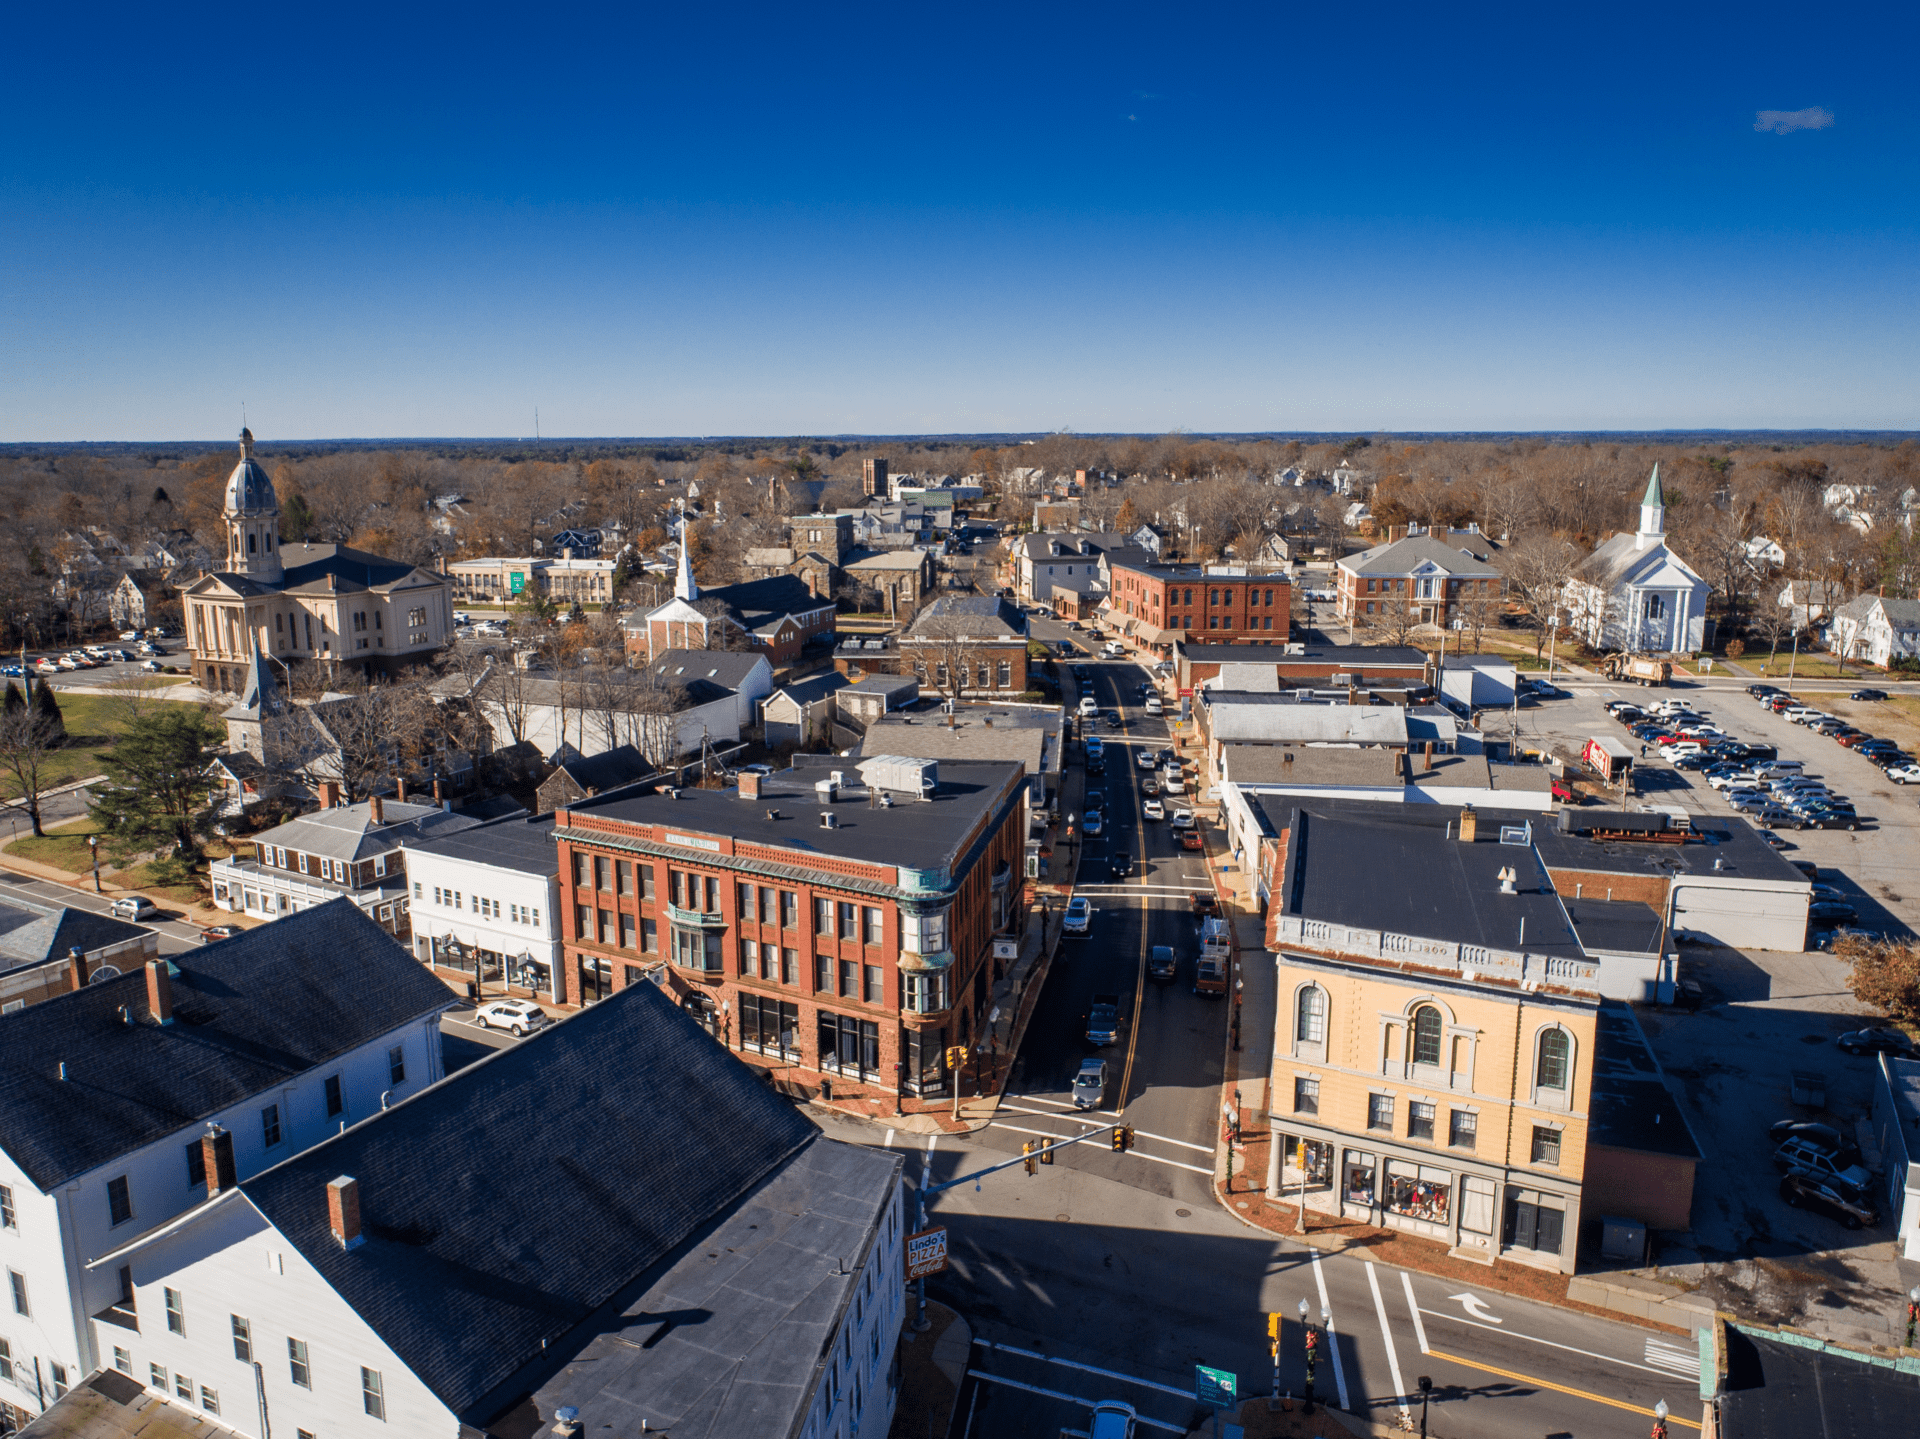 Drone photo of Middleborough's Downtown for the Town's Marketing Guide.